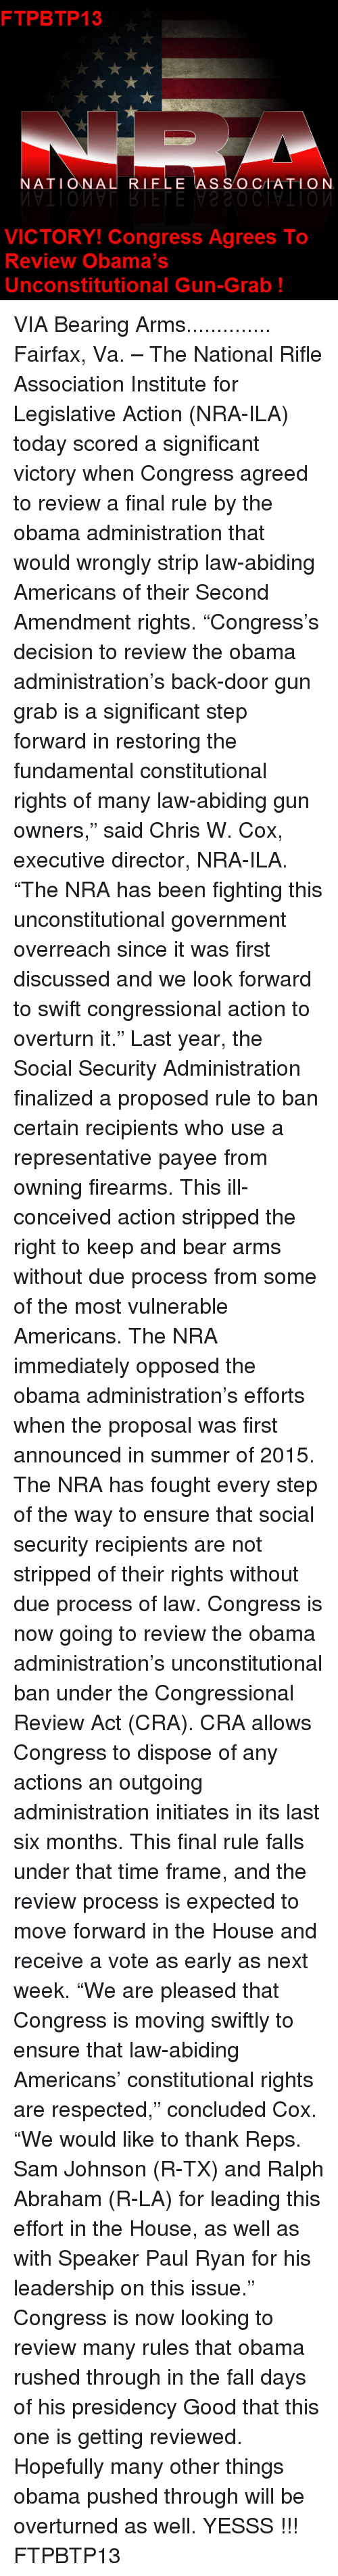 the use of tone and persuasion to influence the audience on the issue of gun control in the nra pres